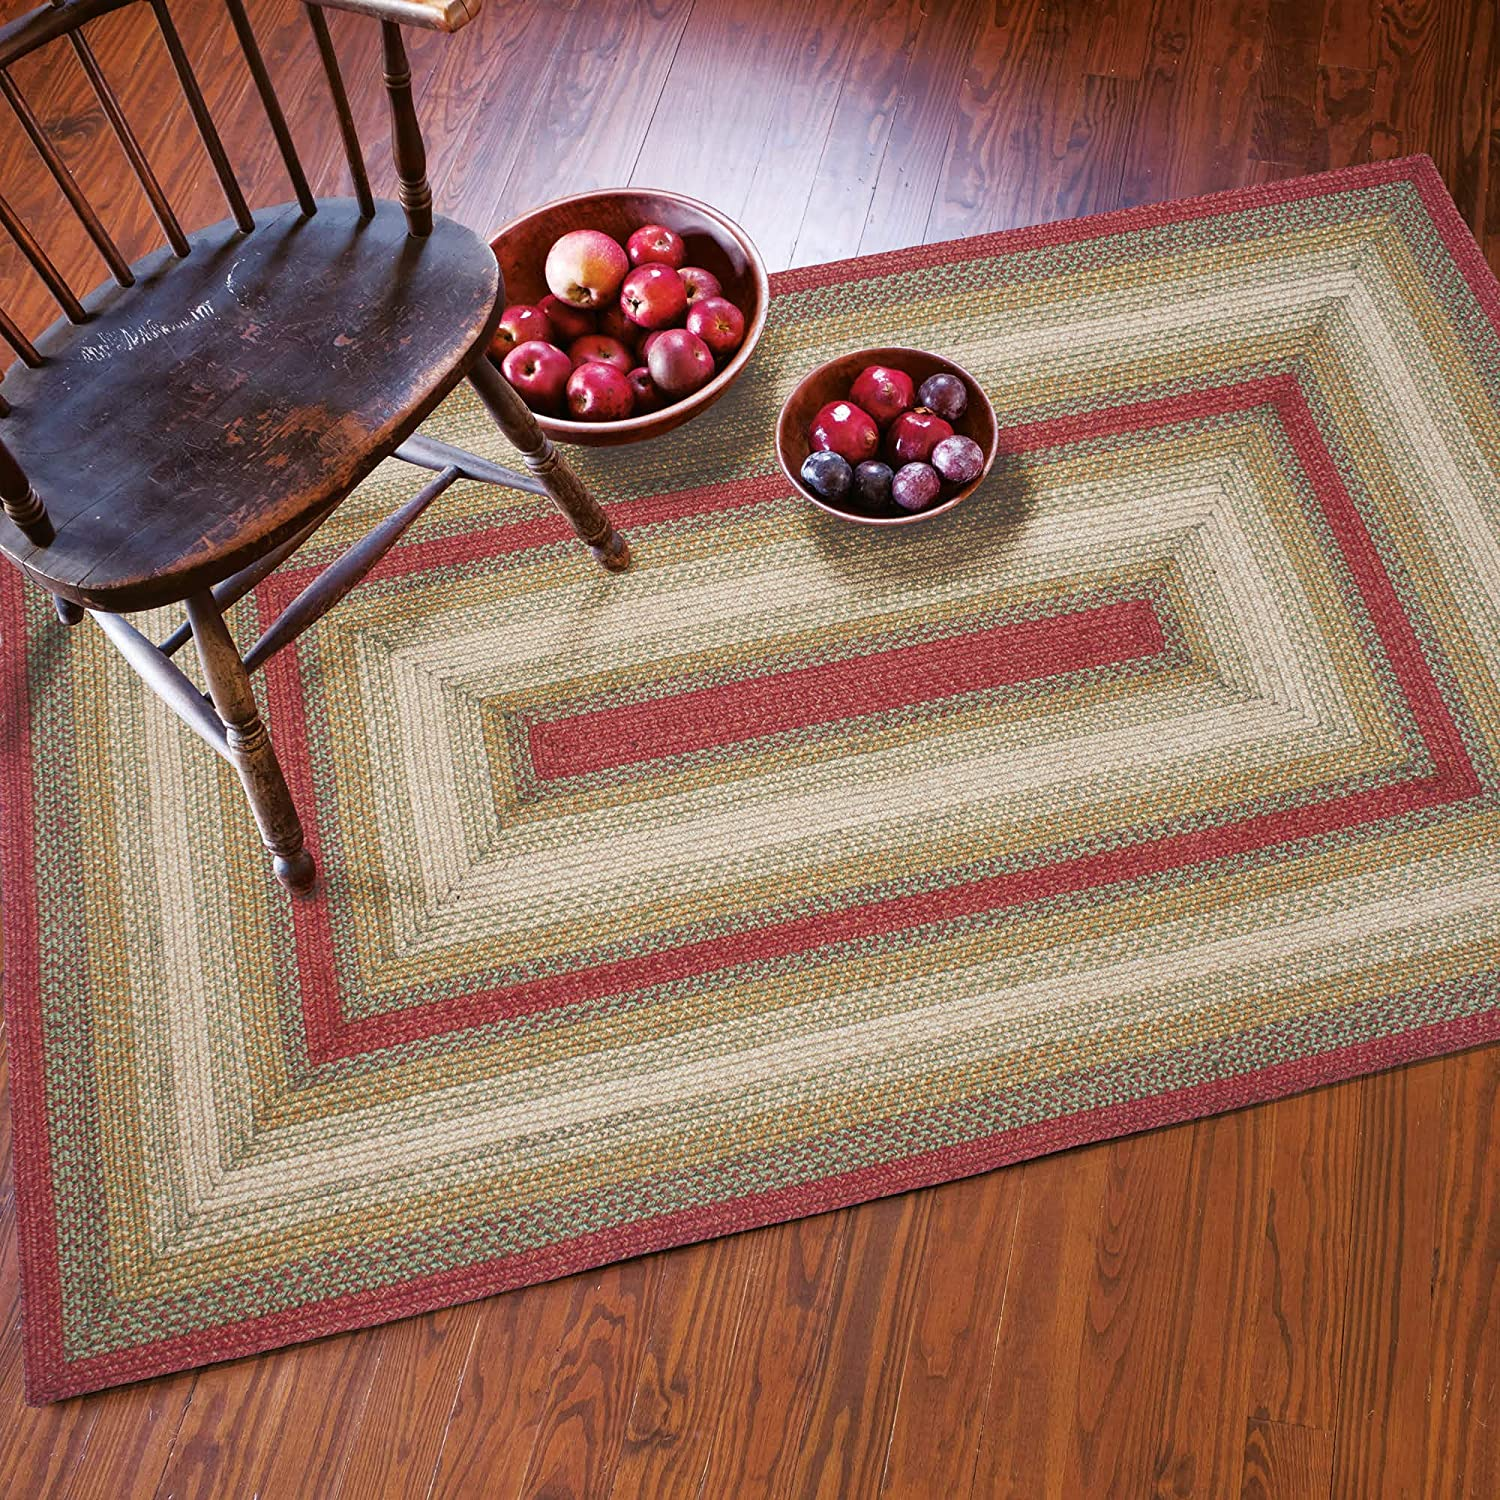 Aberdeen Premium Jute Braided Area Rug by Homespice, 27 x 45 Rectangle Red - Tan - Green, Reversible and Durable, Natural Jute Yarn Rustic, Farmhouse, Primitive Style - 30 Day Risk Free Purchase